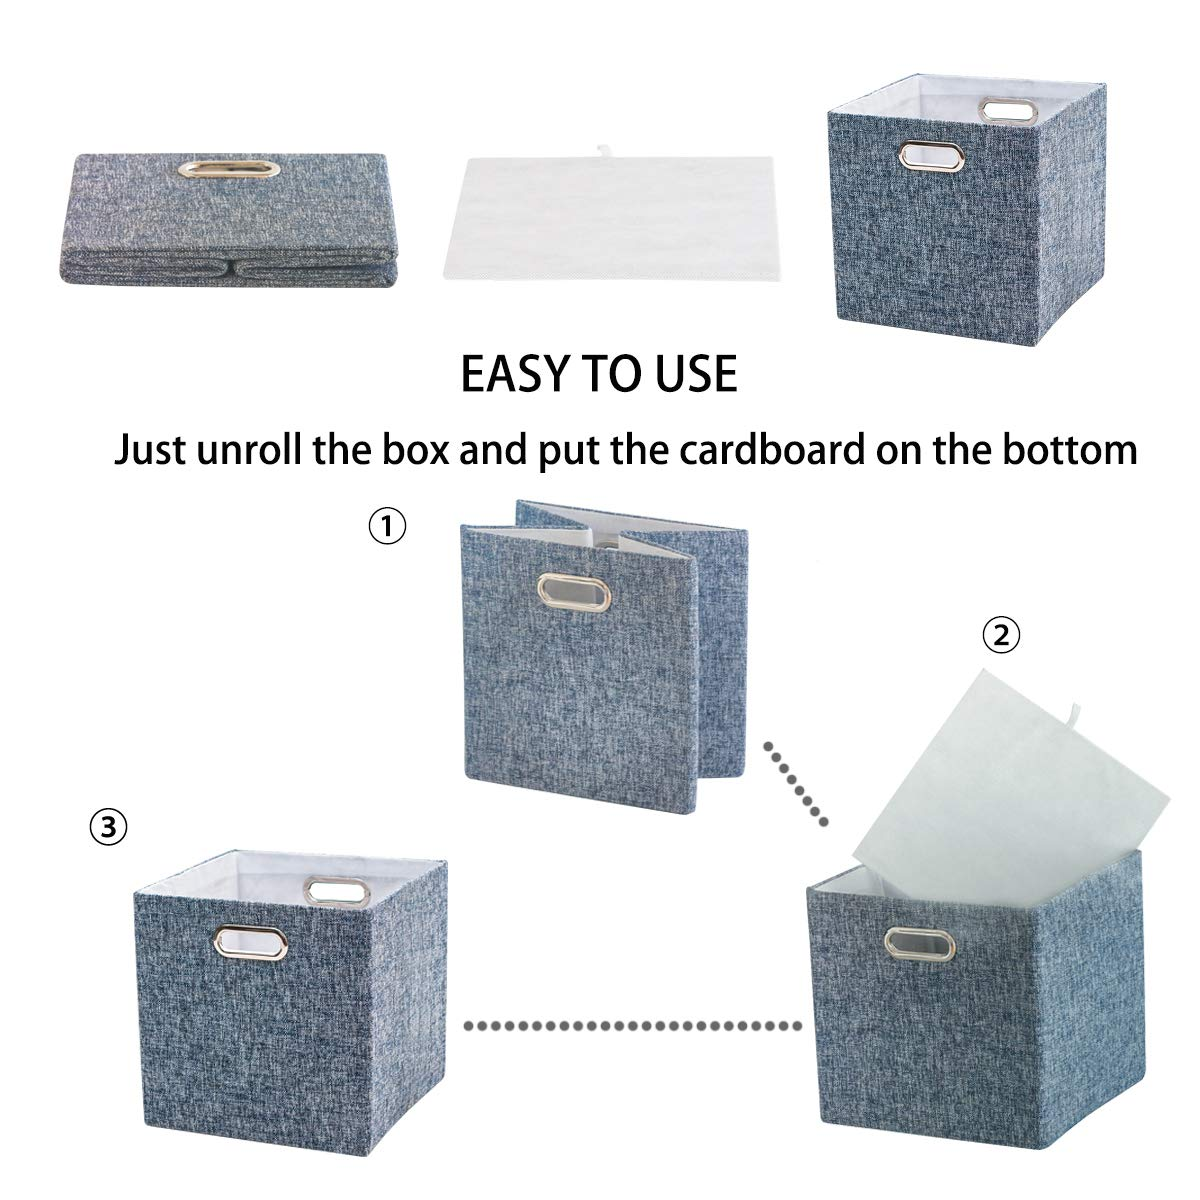 BAIST Fabric Storage Cubes,Fancy Big Collapsible Colored Linen Bed Drawer Storage Baskets Bins Organizers for playroom Books Toys-Set of 4,Gray